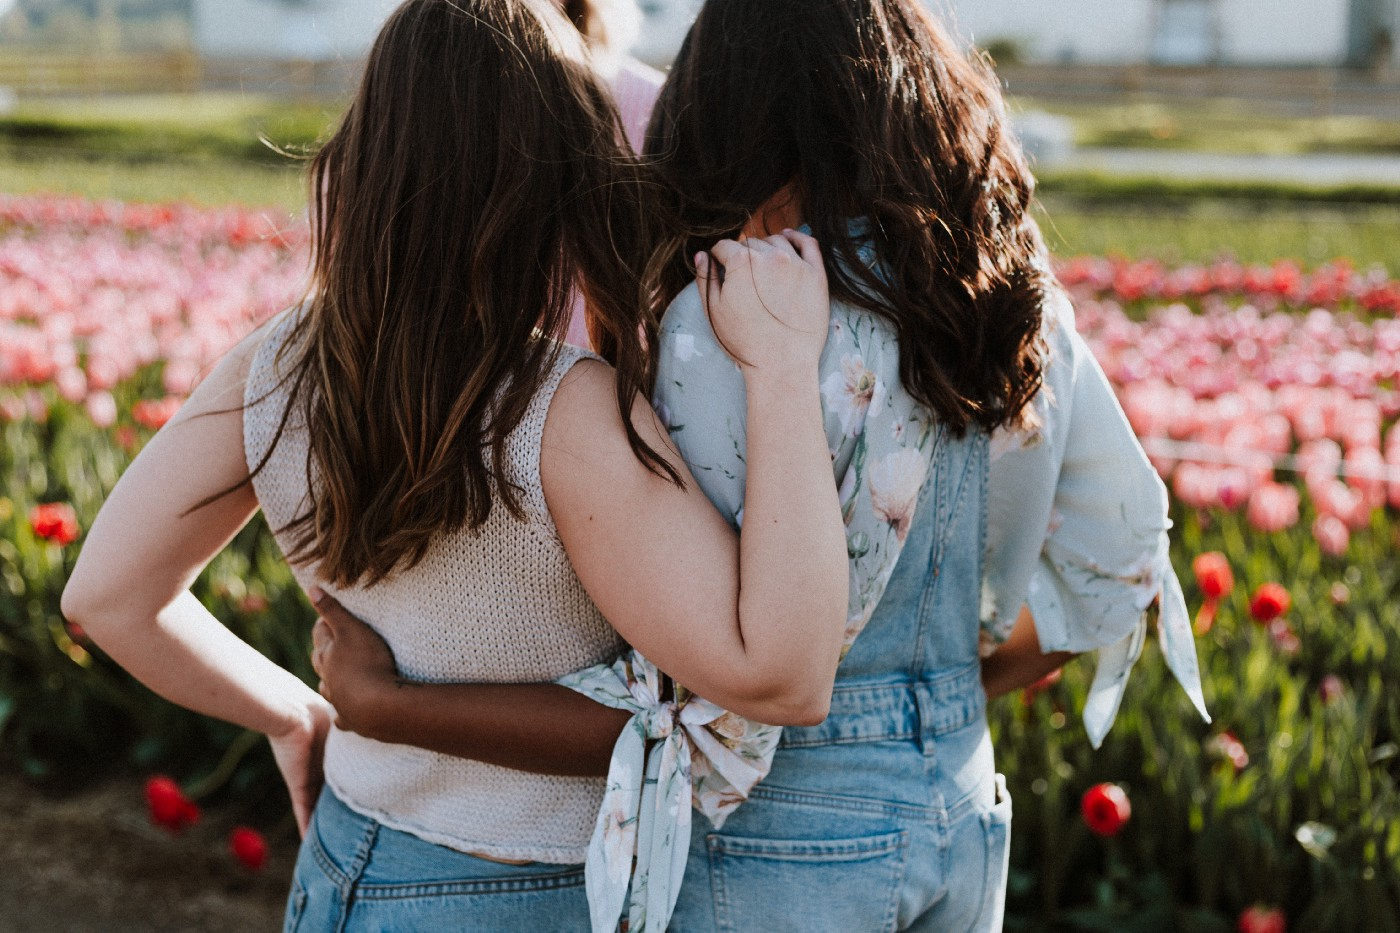 A photo taken from behind of a couple of mixed race girlfriends clasping each other's back looking out towards a garden of pink tulips—like what you'd imagine strong few friendships would be like.